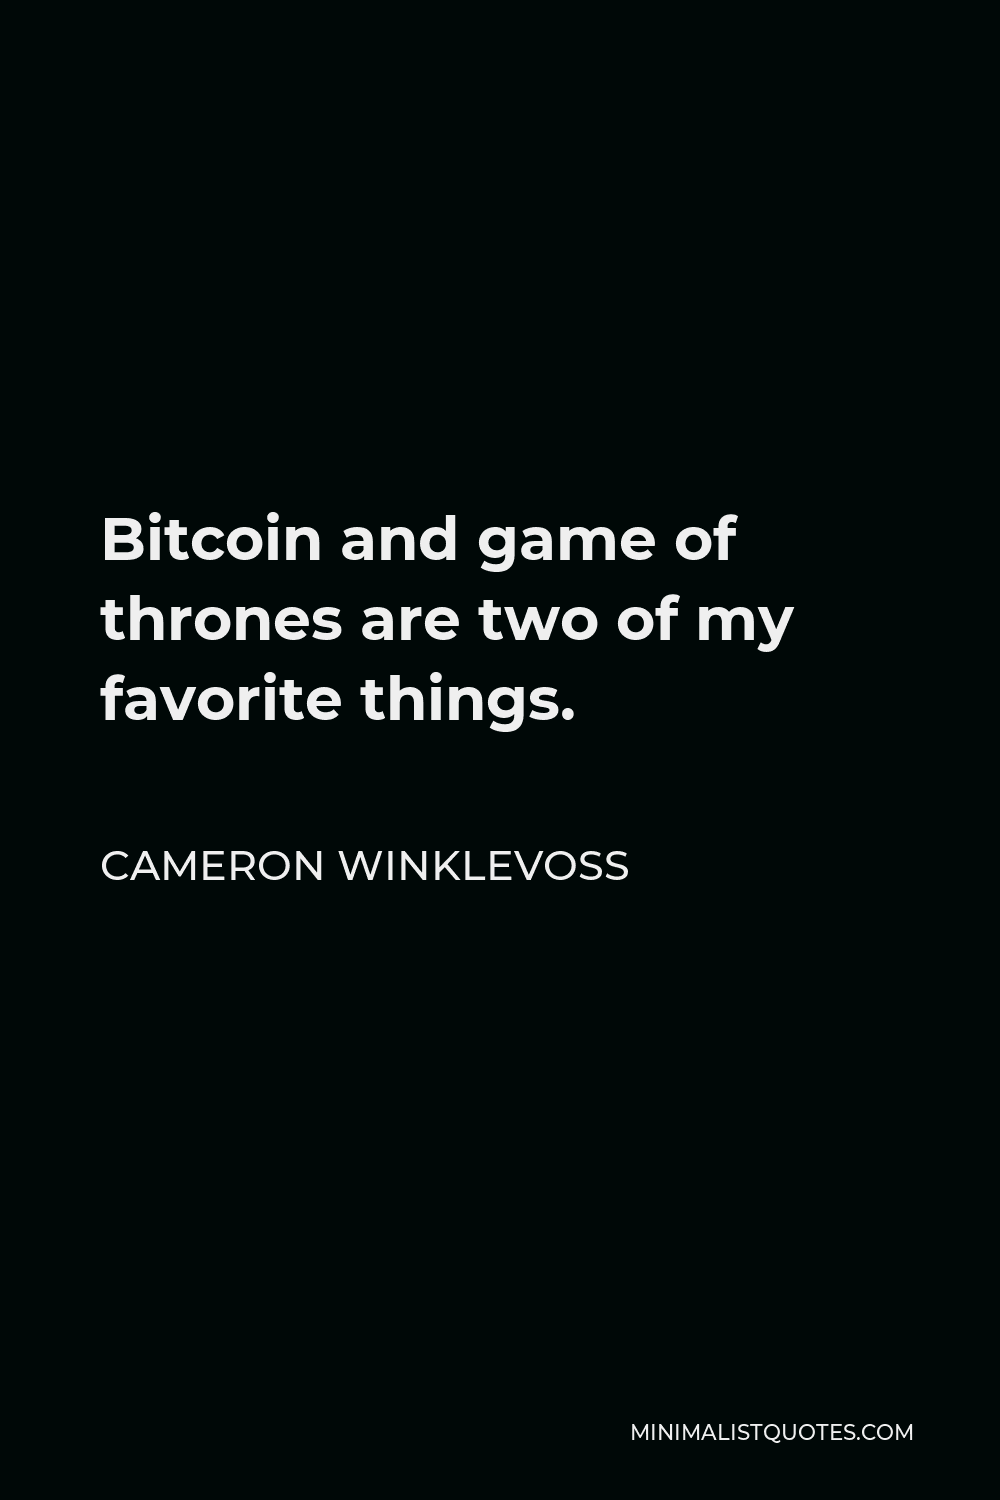 Cameron Winklevoss Quote Bitcoin And Game Of Thrones Are Two Of My Favorite Things